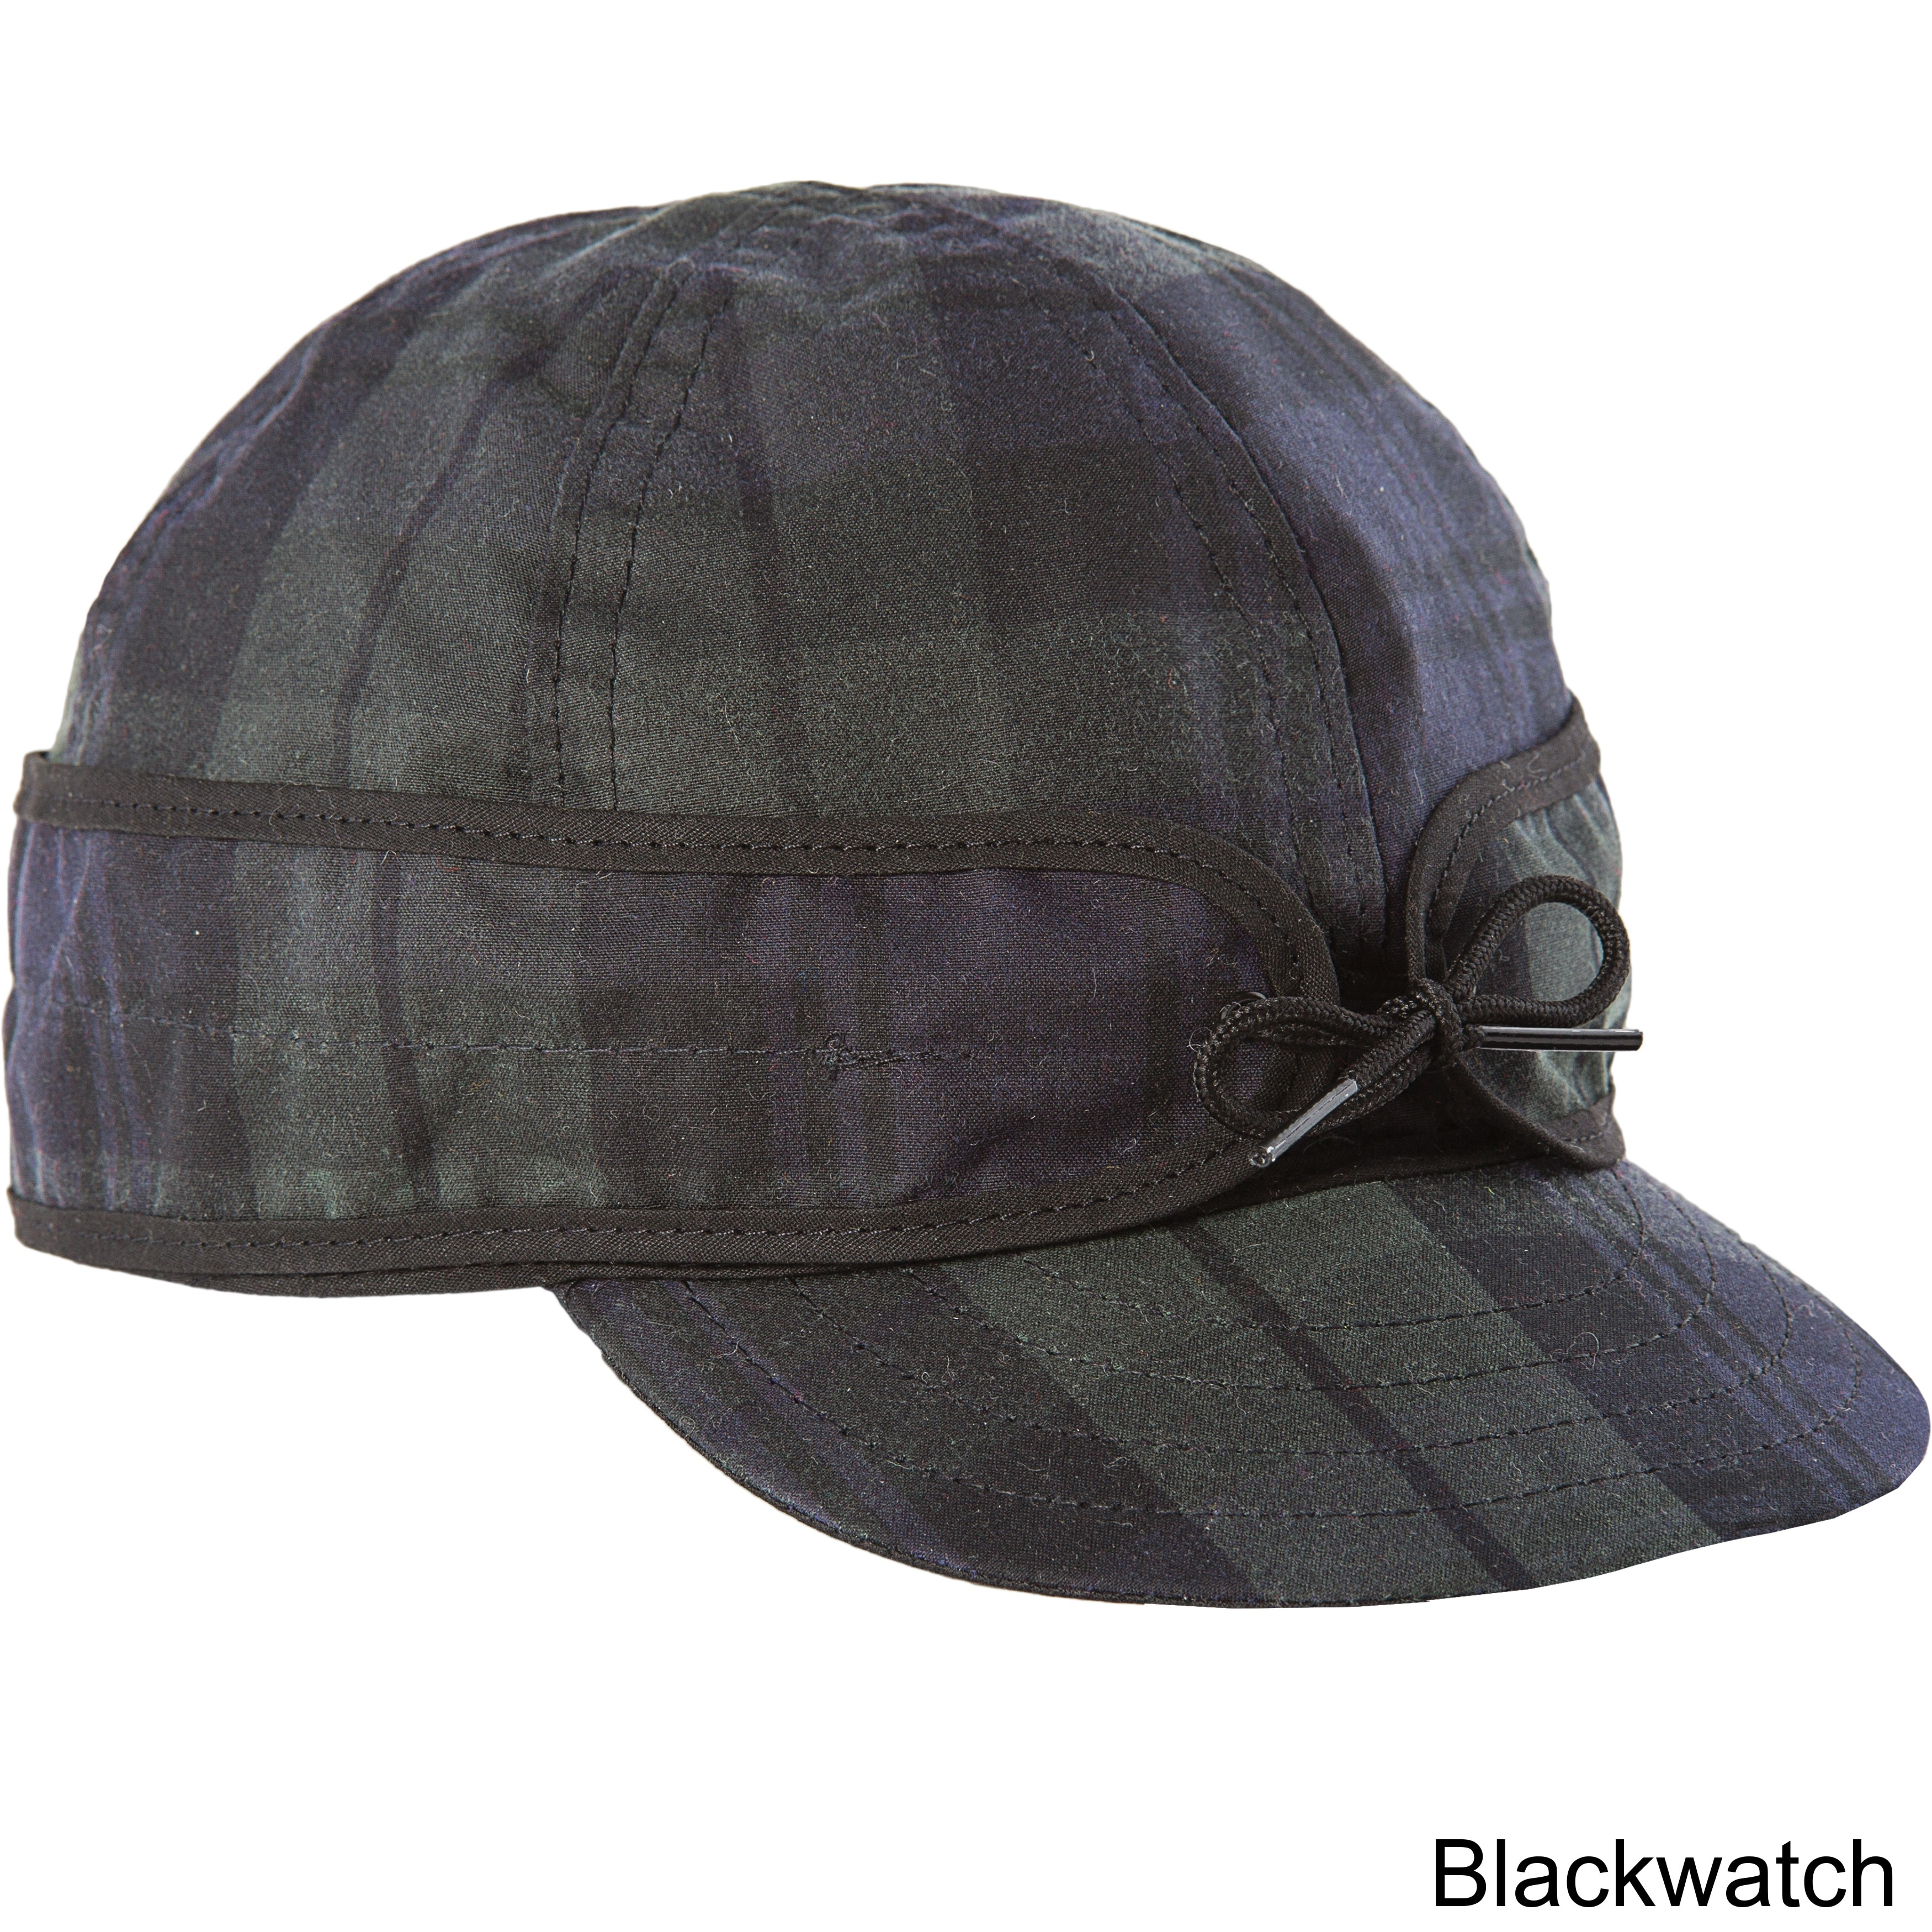 Stormy Kromer Blackwatch Waxed Cotton Cap